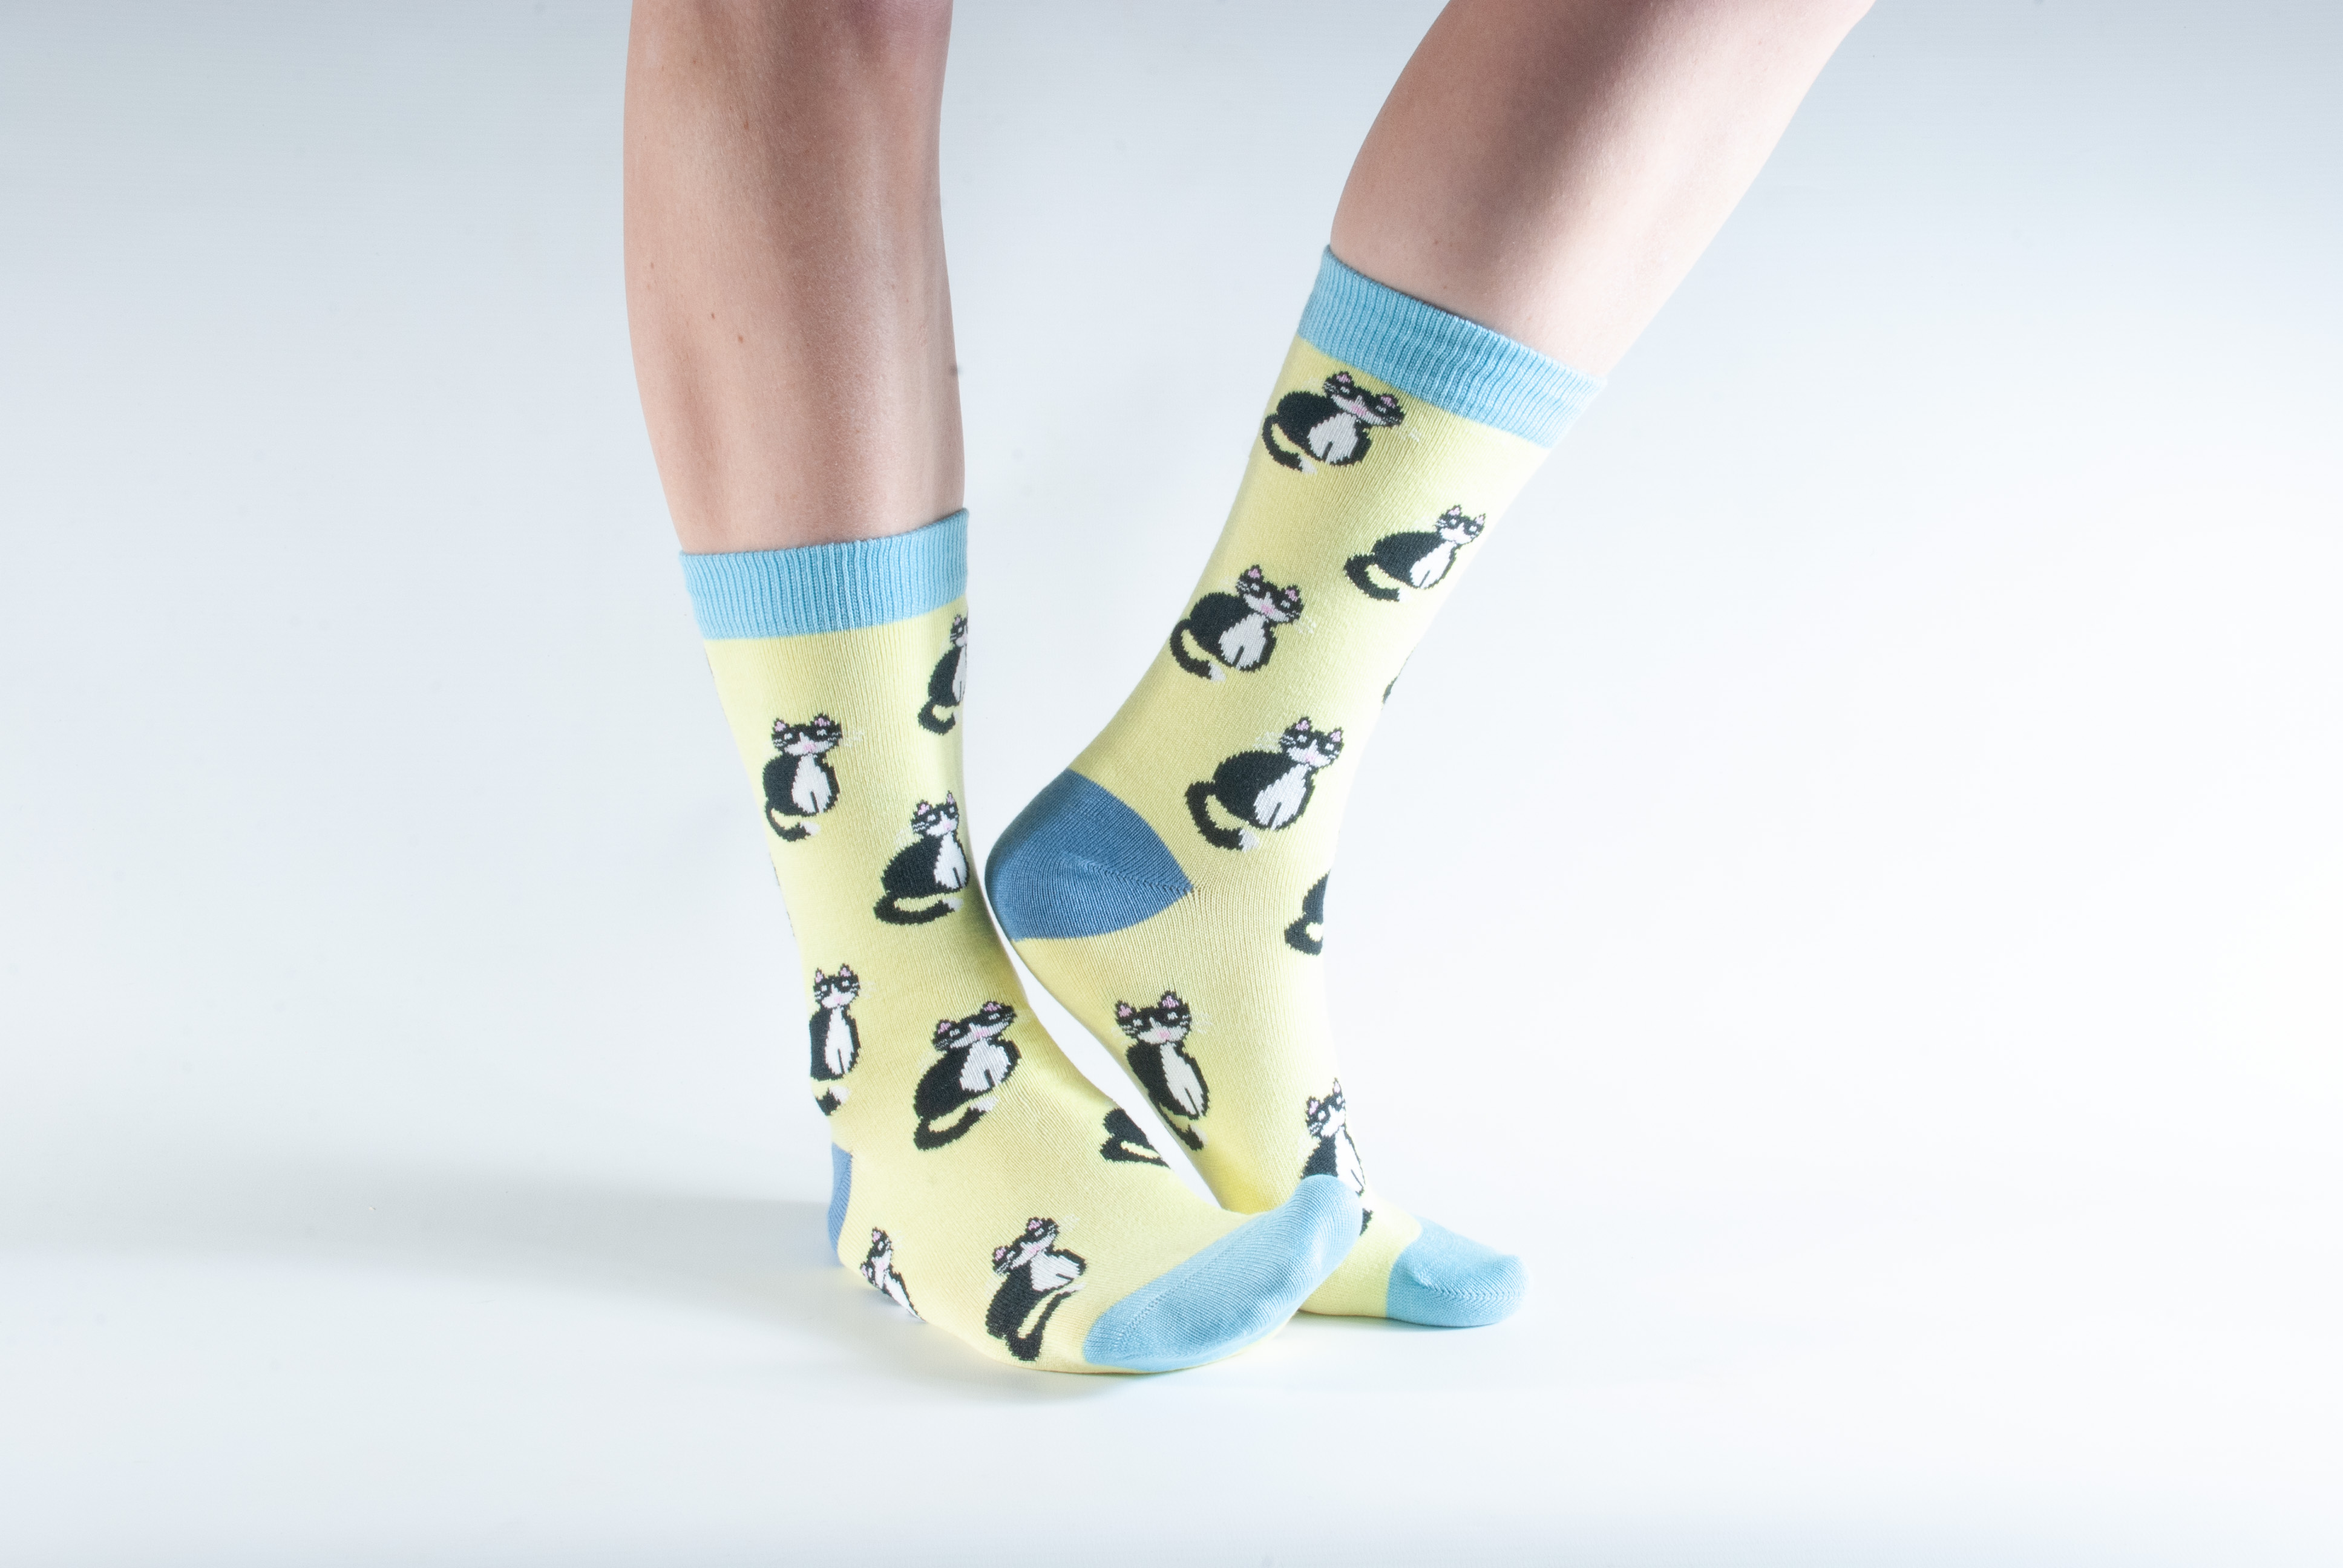 An image relating to Doris & Dude socks